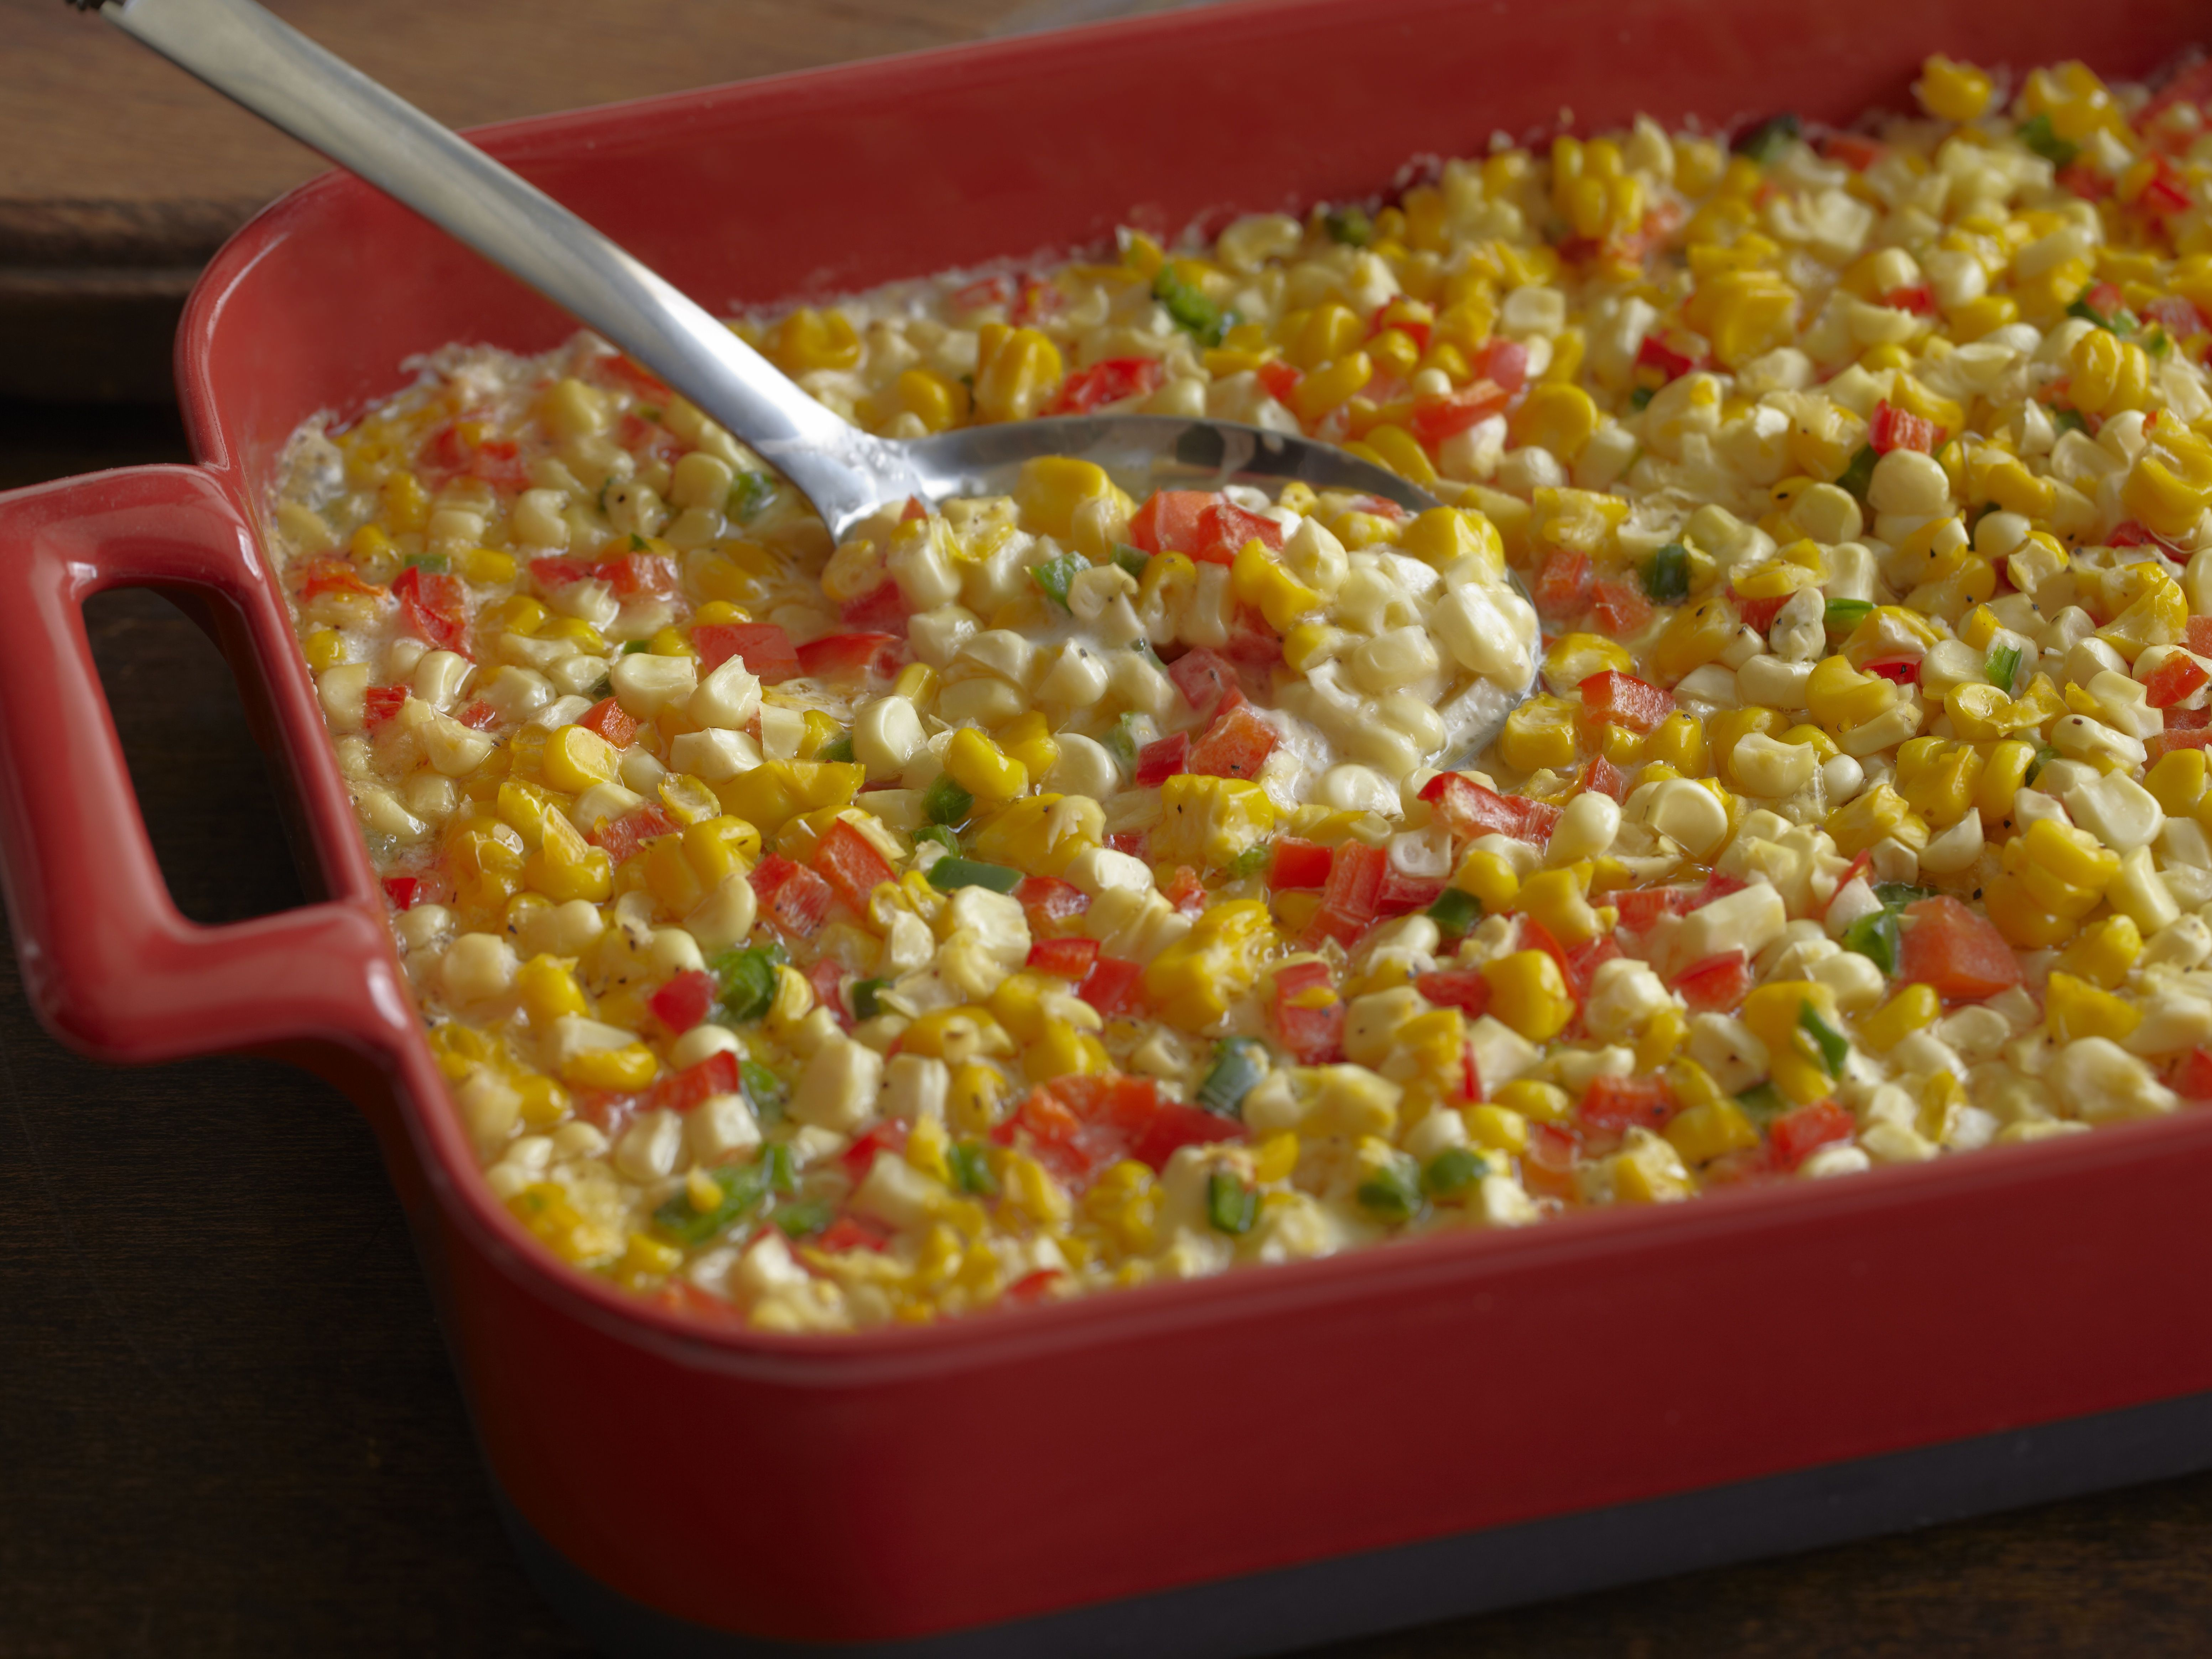 Fresh Corn Casserole With Red Bell Peppers And Jalapenos Recipe Food Network Recipes Creamy Corn Casserole Fresh Corn Casserole